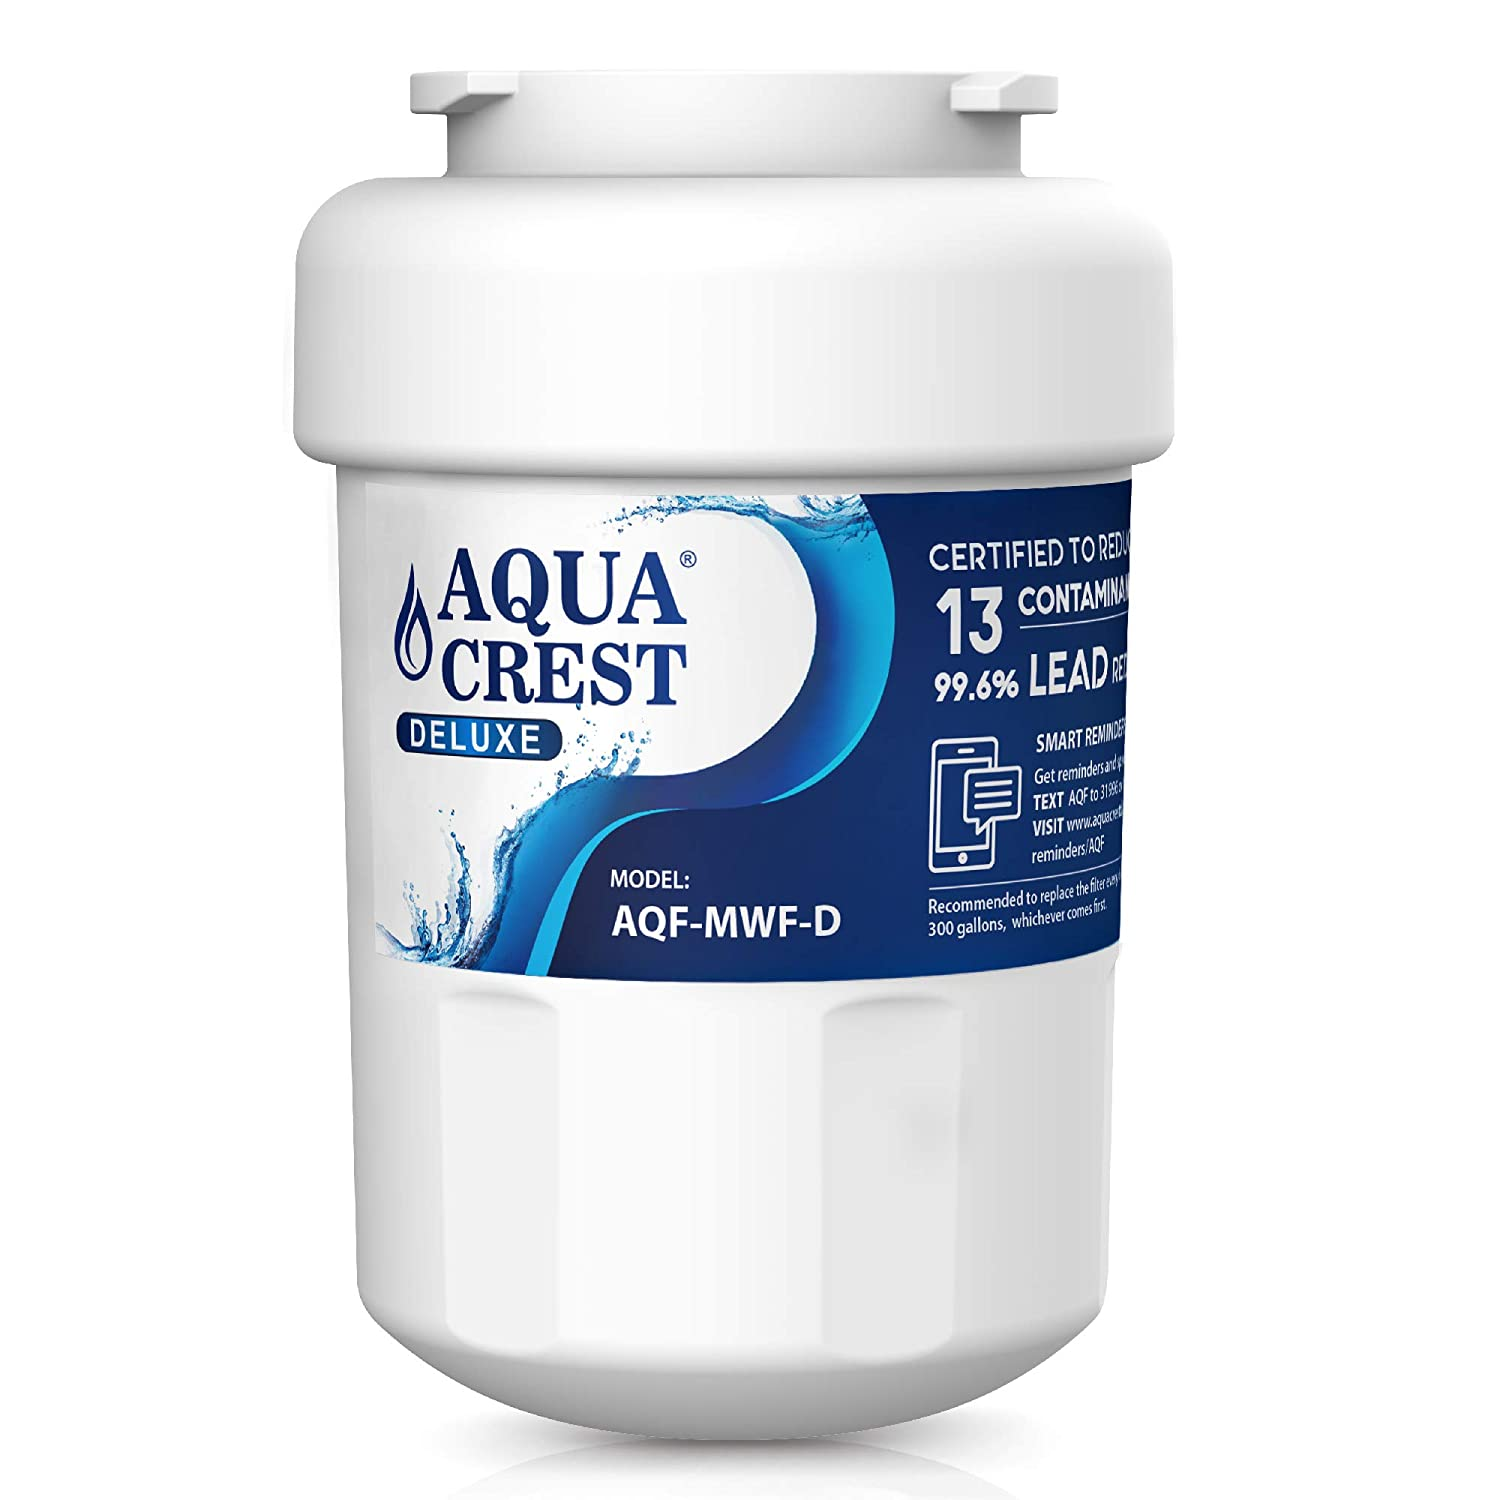 AQUACREST MWF NSF 401,53&42 Certified Refrigerator Water Filter, Compatible with GE MWF, SmartWater, MWFP, MWFA, GWF, HDX FMG-1, WFC1201, GSE25GSHECSS, PC75009, RWF1060, 197D6321P006